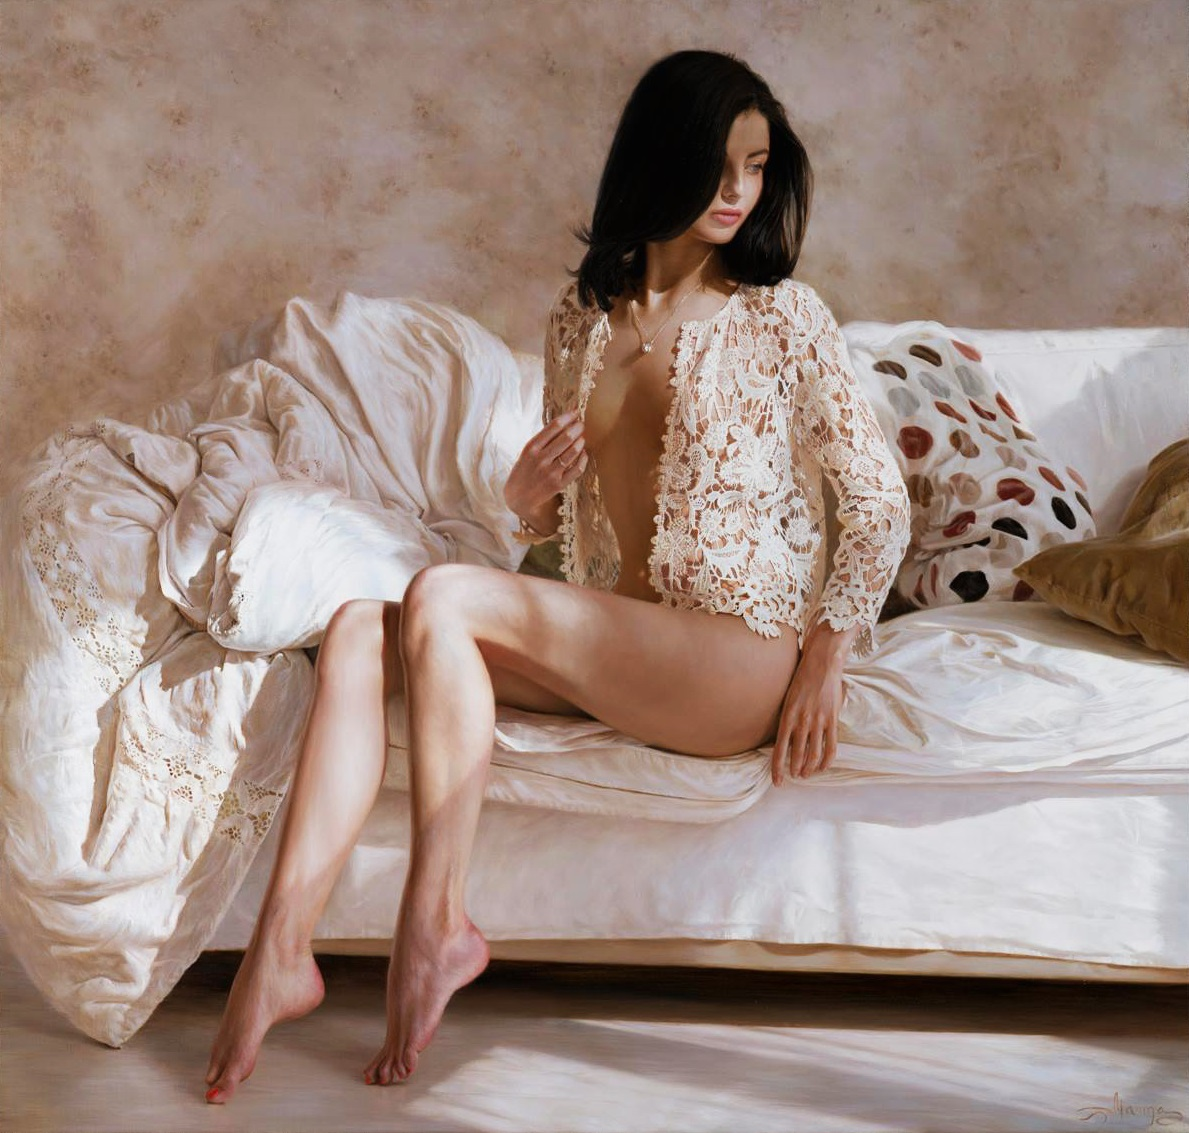 Hyperrealistic Oil Paintings by Marina Marina - Sunday Morning (2014)